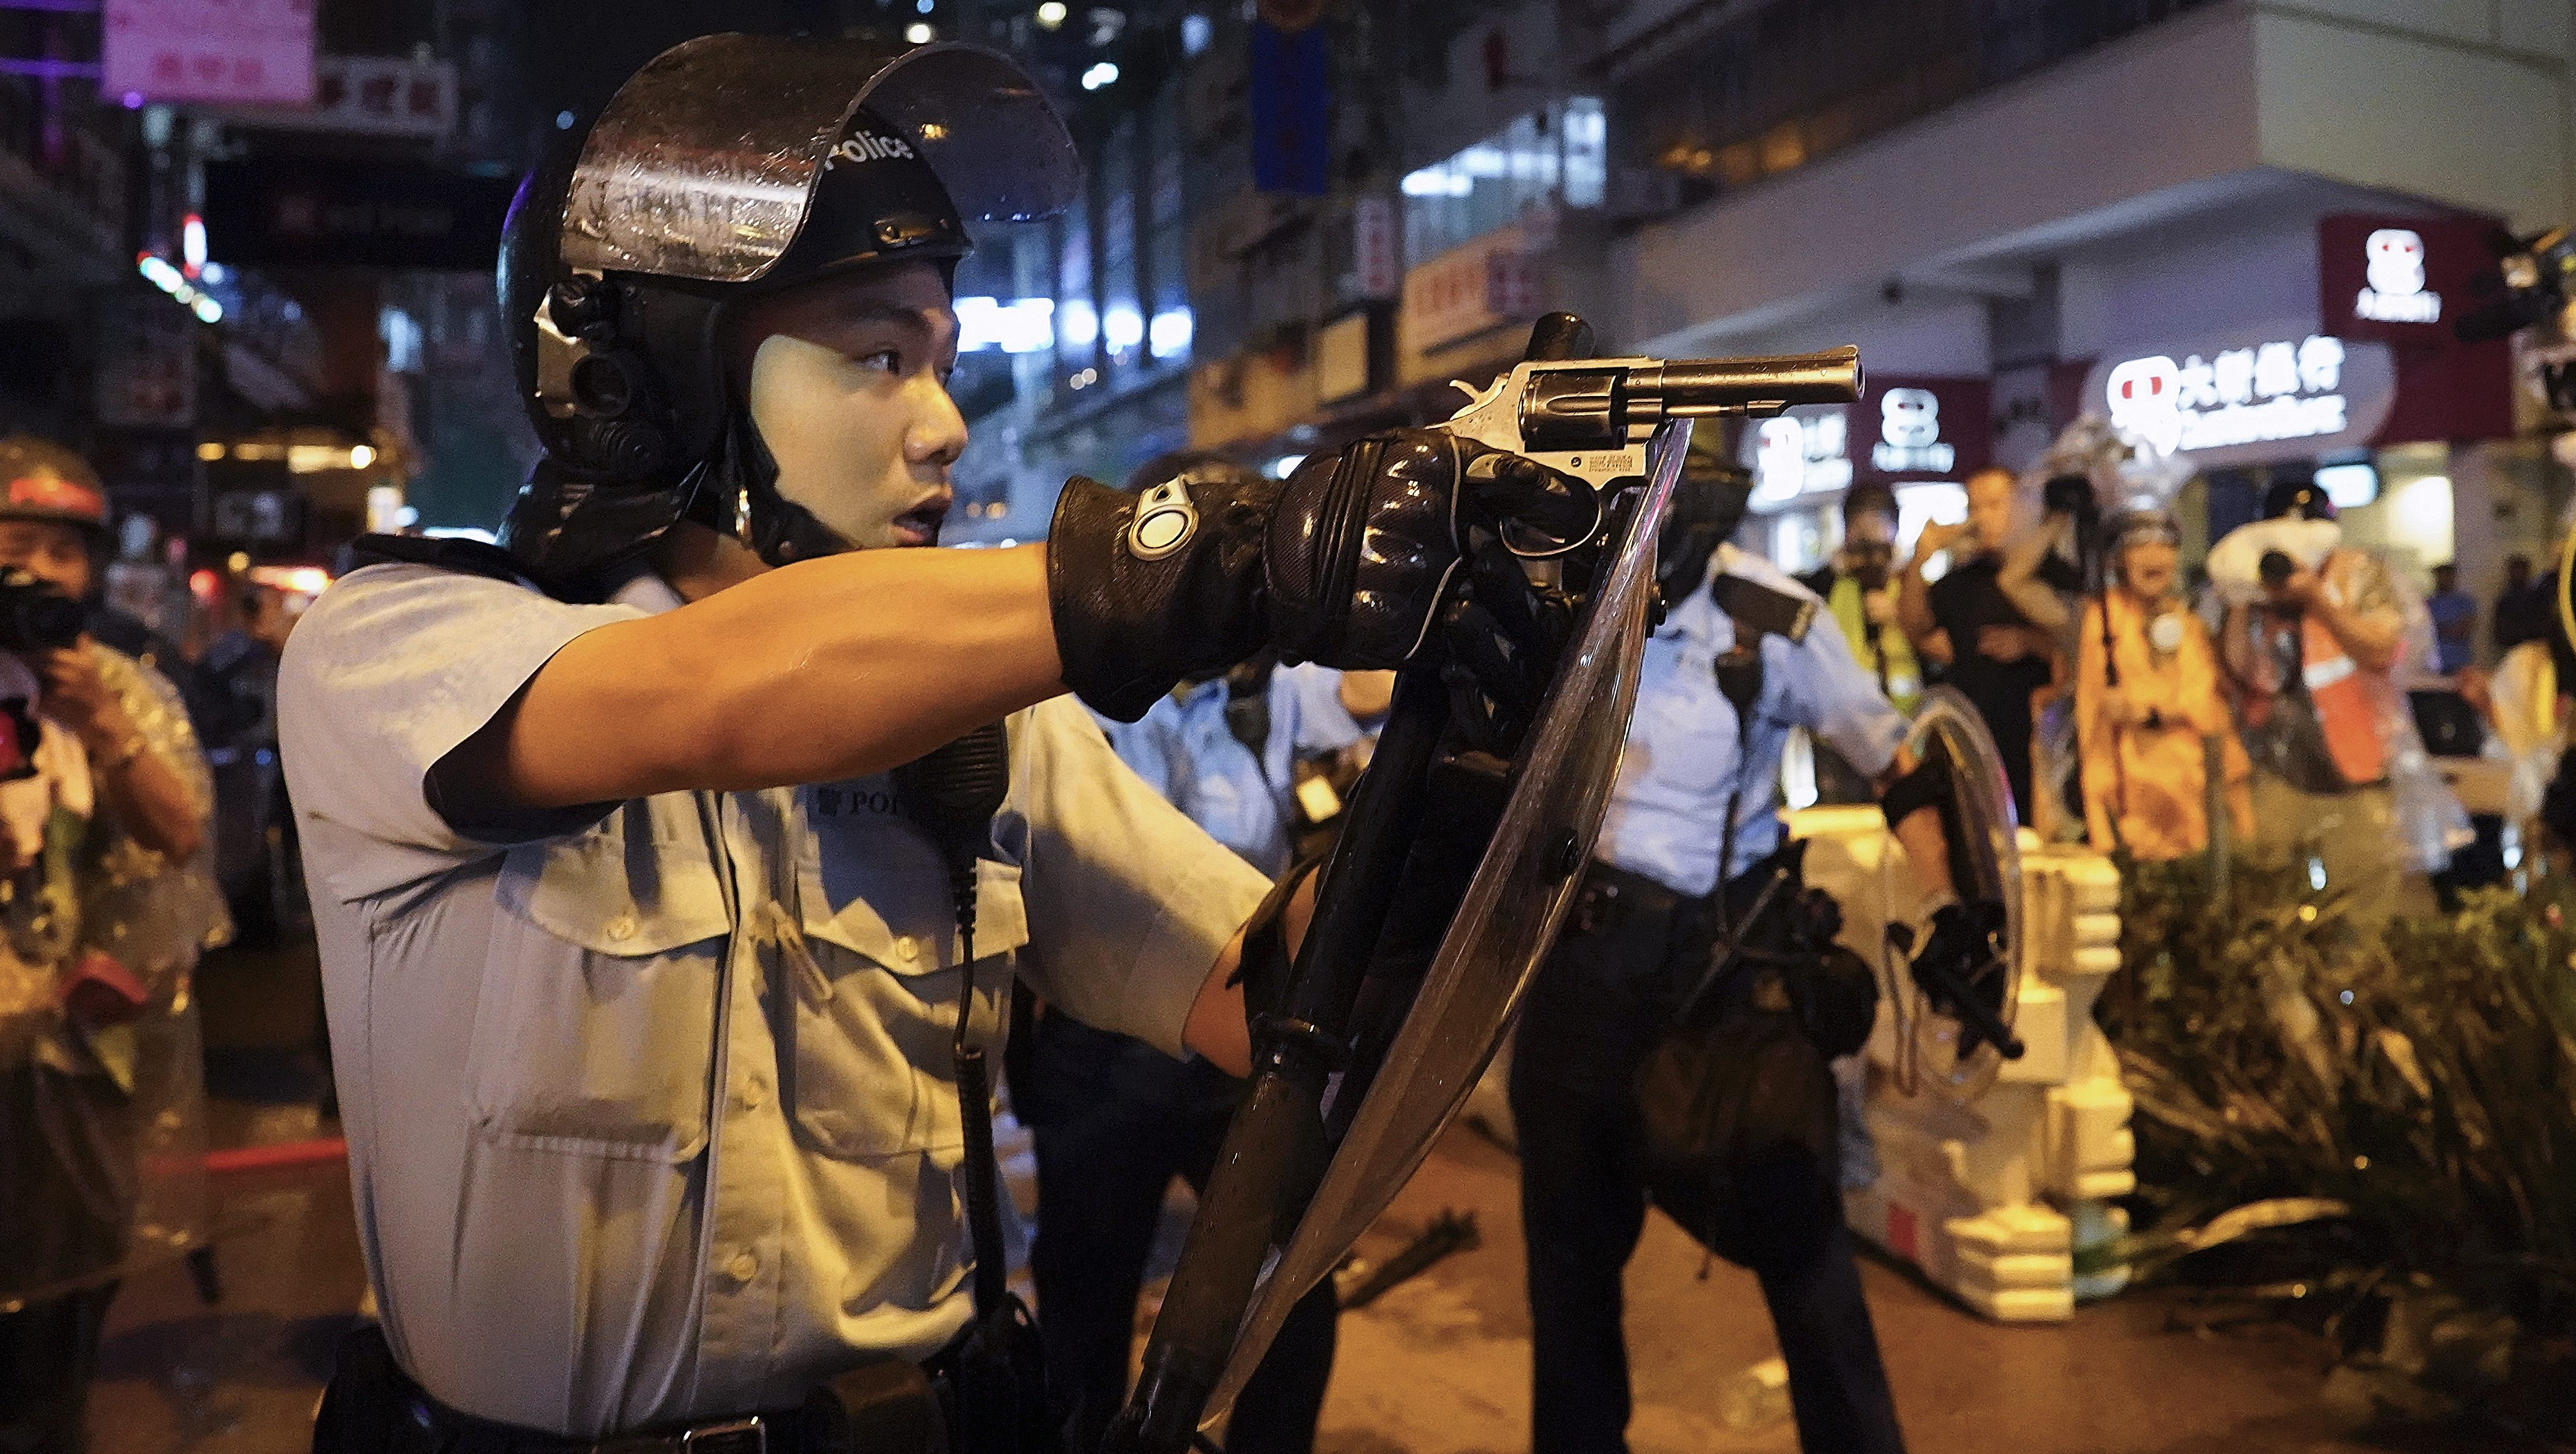 Hong Kong police officer points gun at protesters